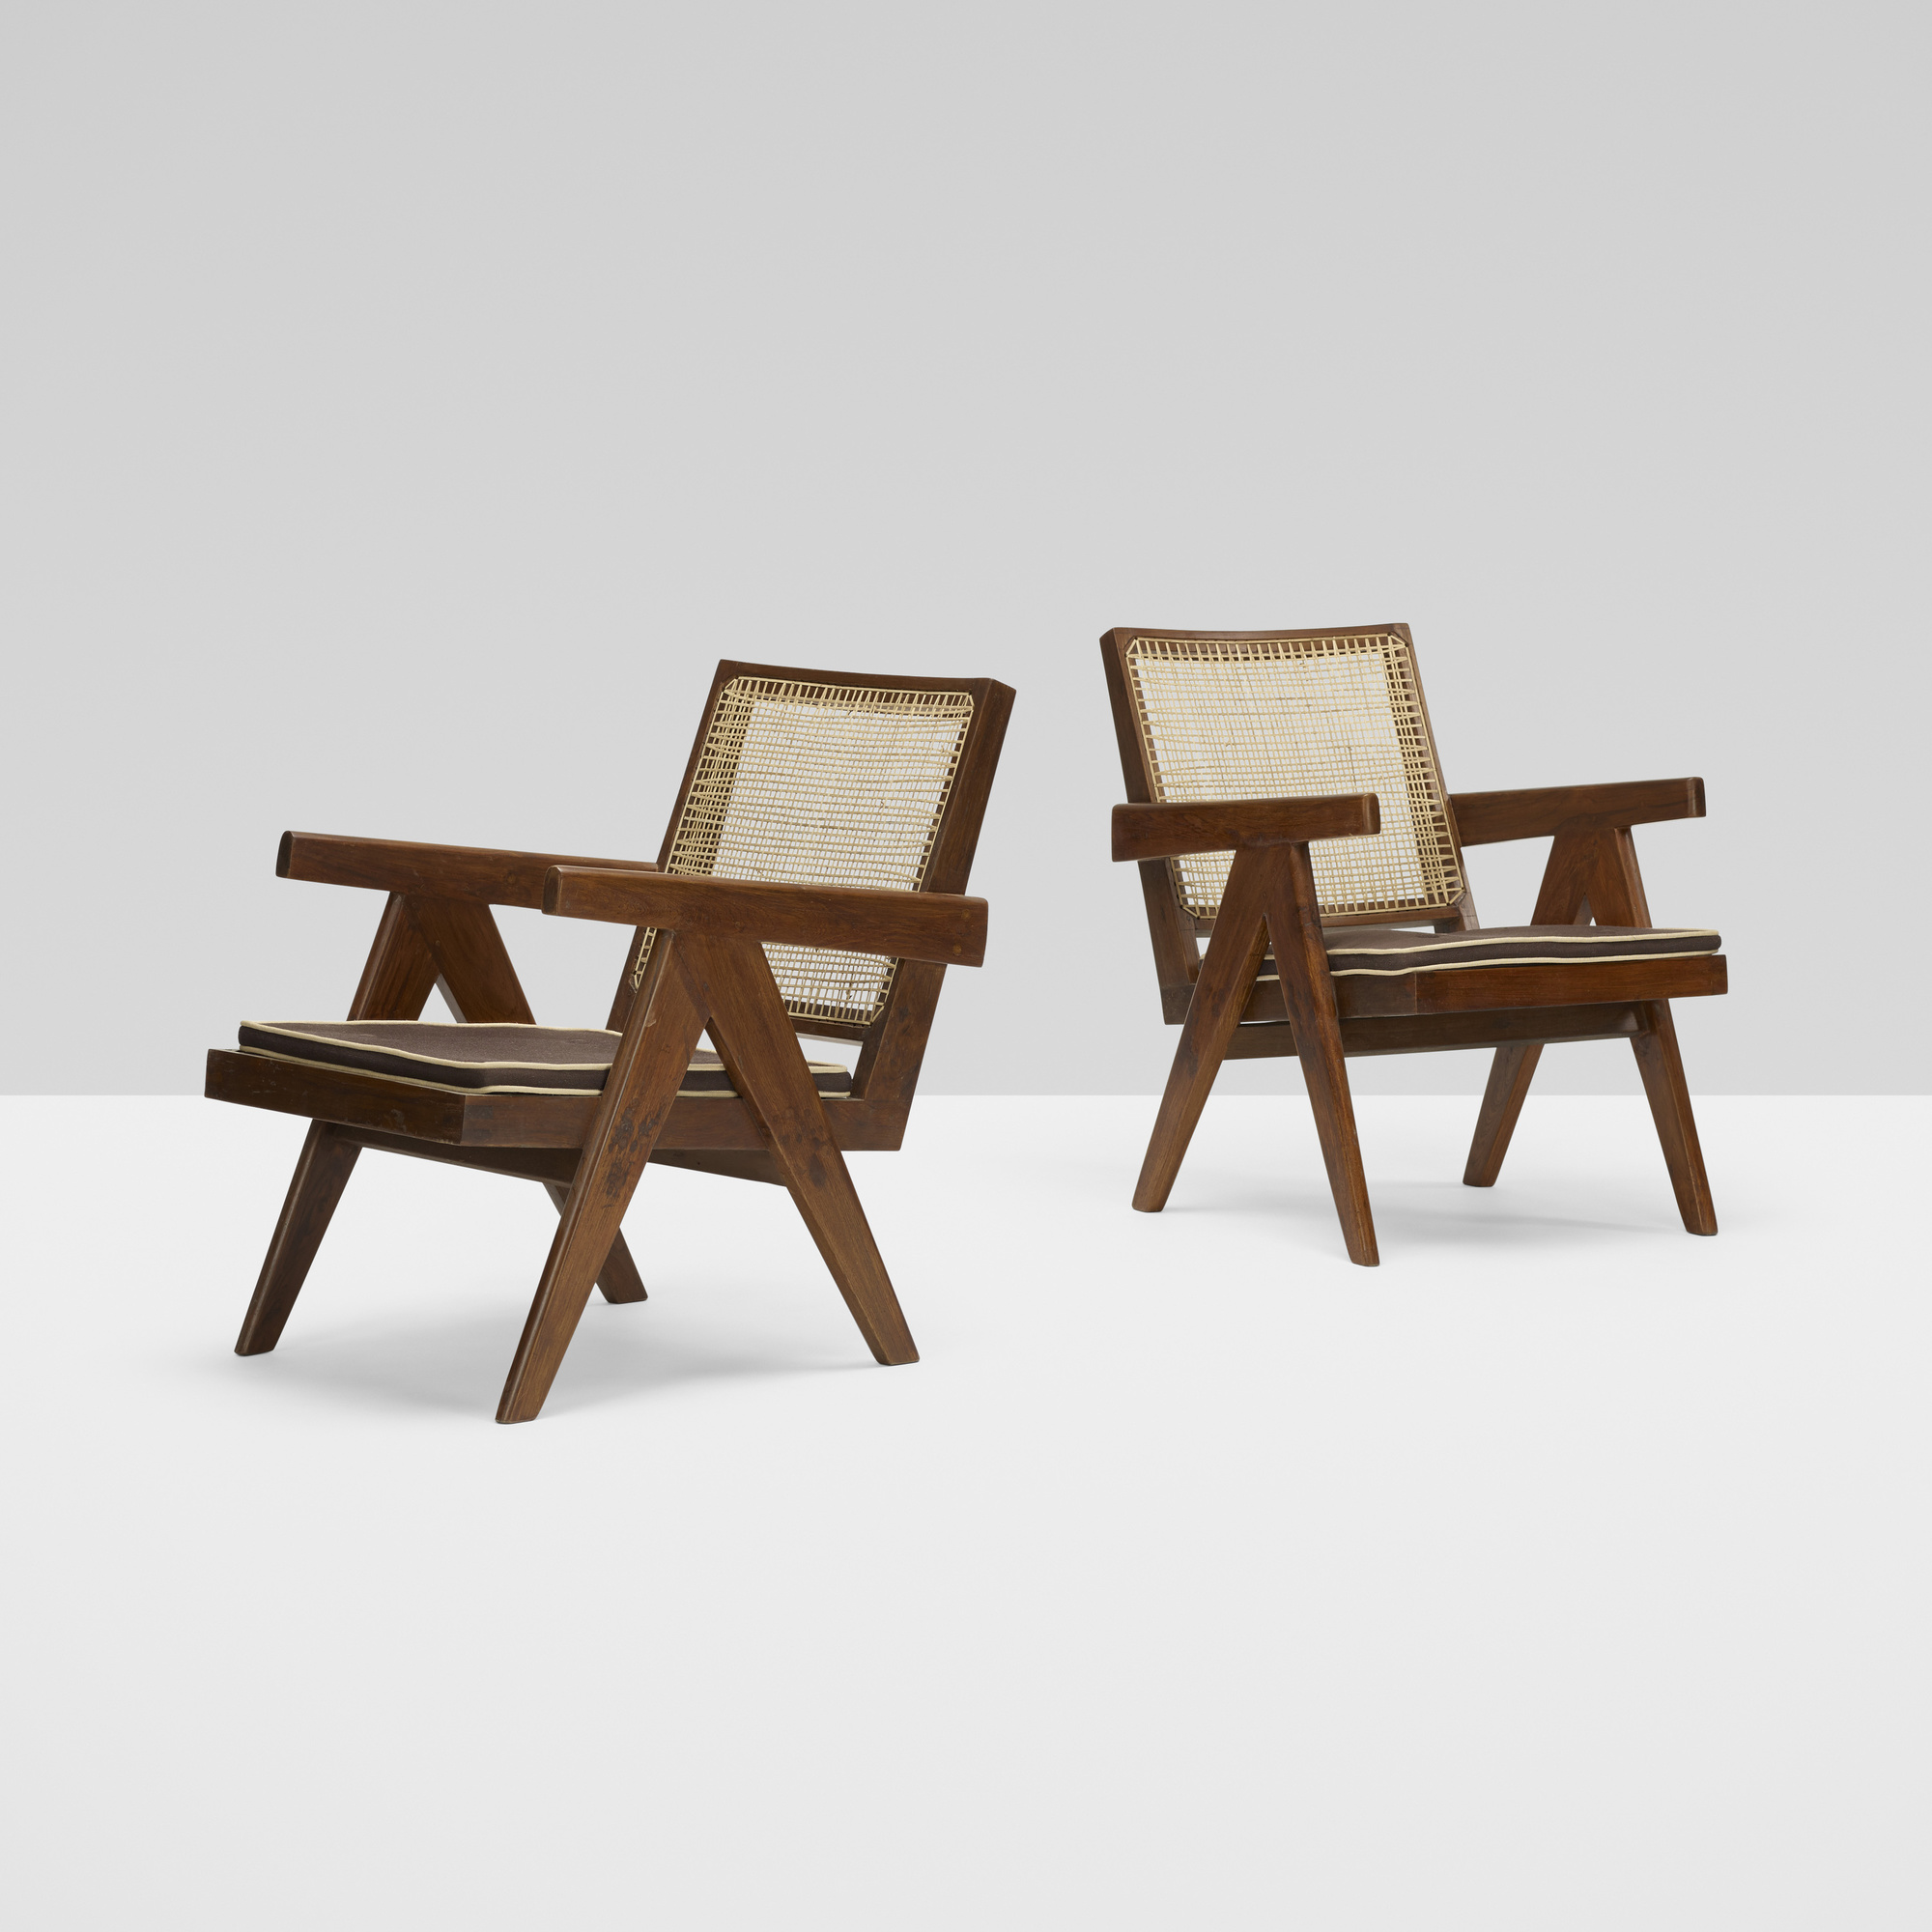 110: Pierre Jeanneret / pair of Easy armchairs from Chandiarh (1 of 3)